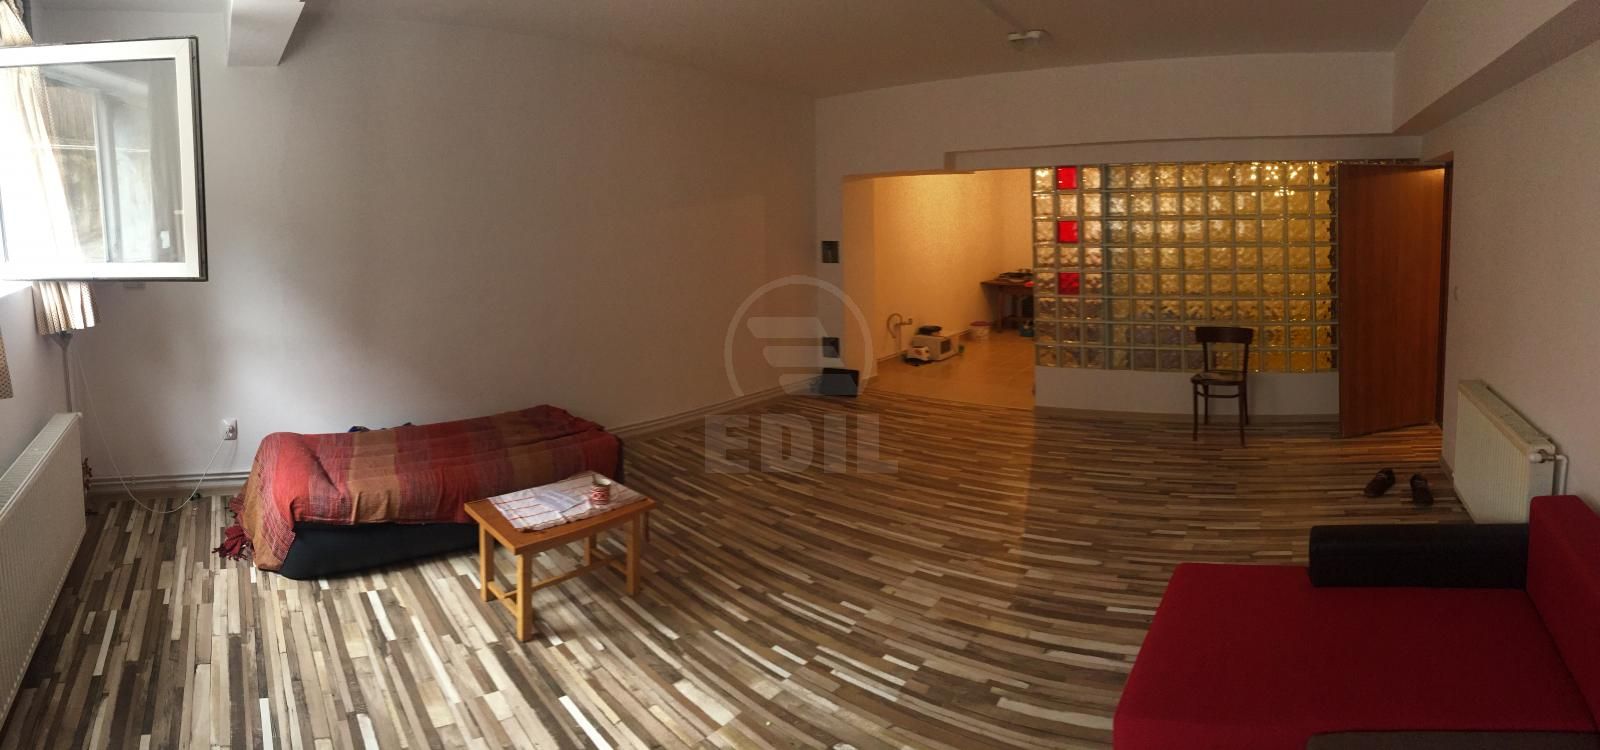 Apartment for sale 2 rooms, APCJ272606-2